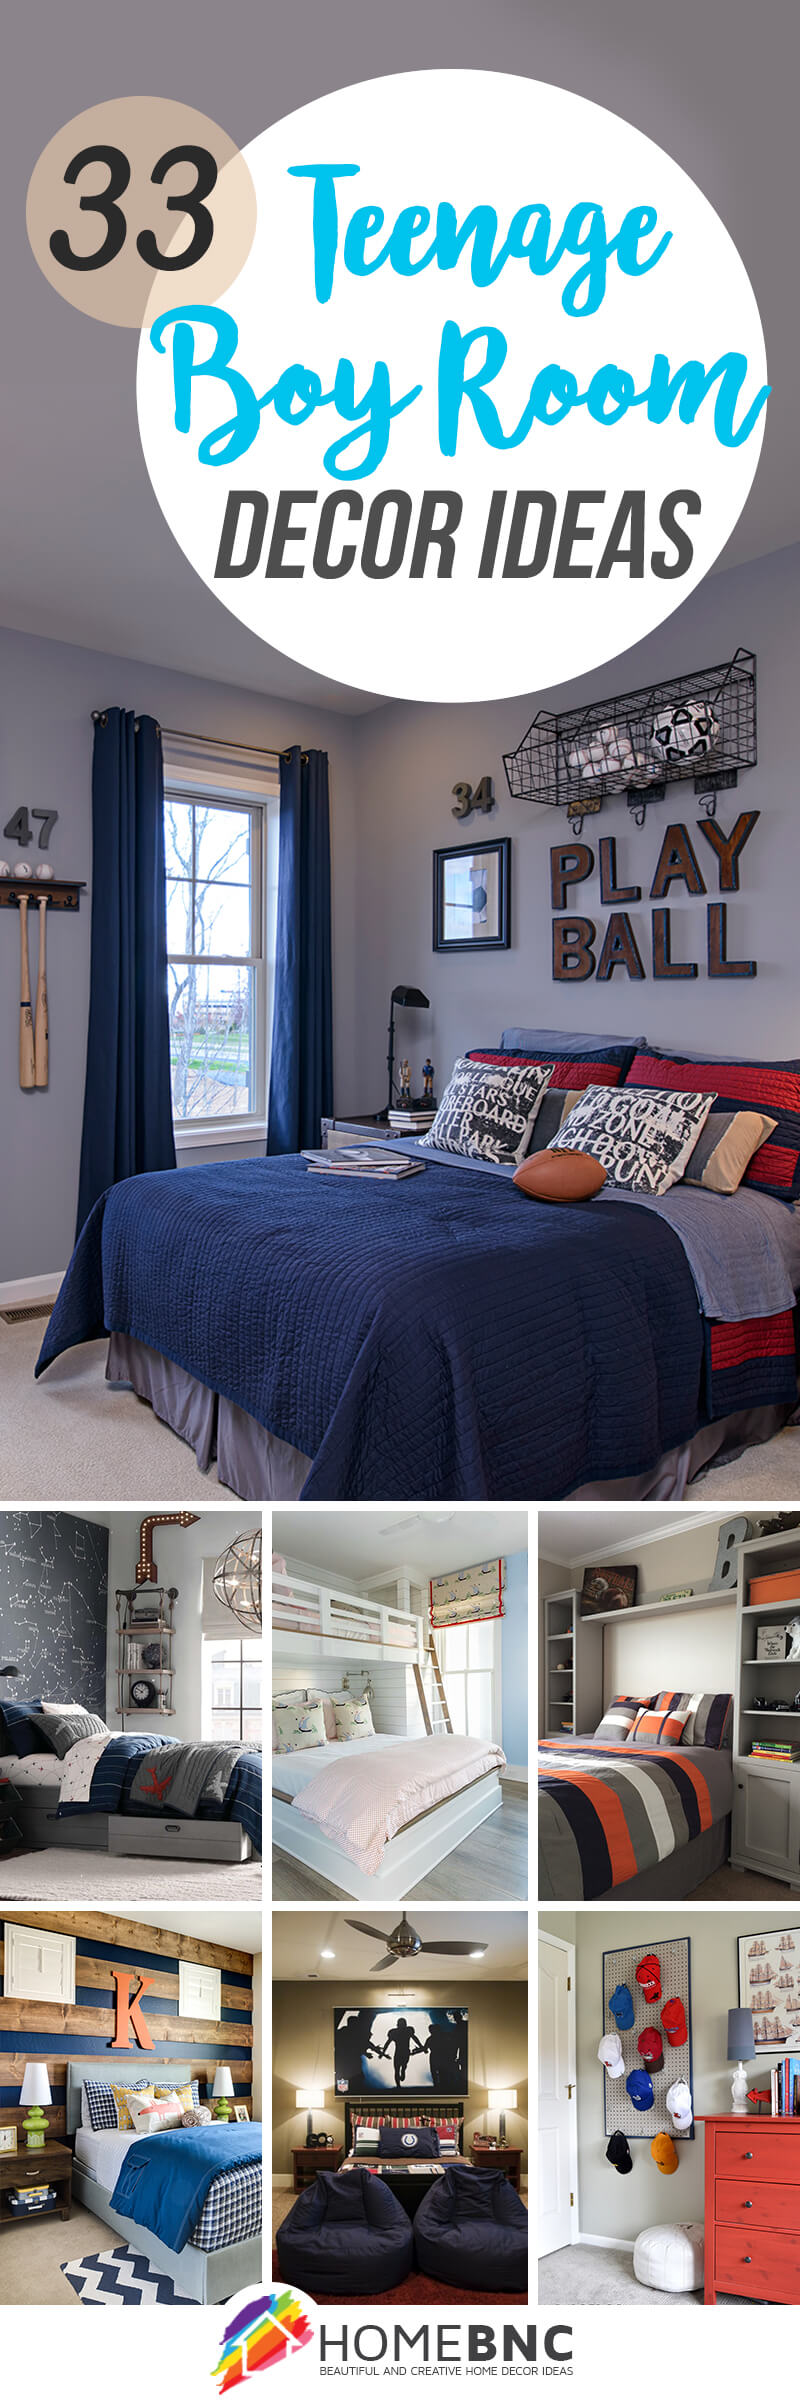 33 On Trend Teenage Boy Room Decor Ideas From Sophisticated To Sporty